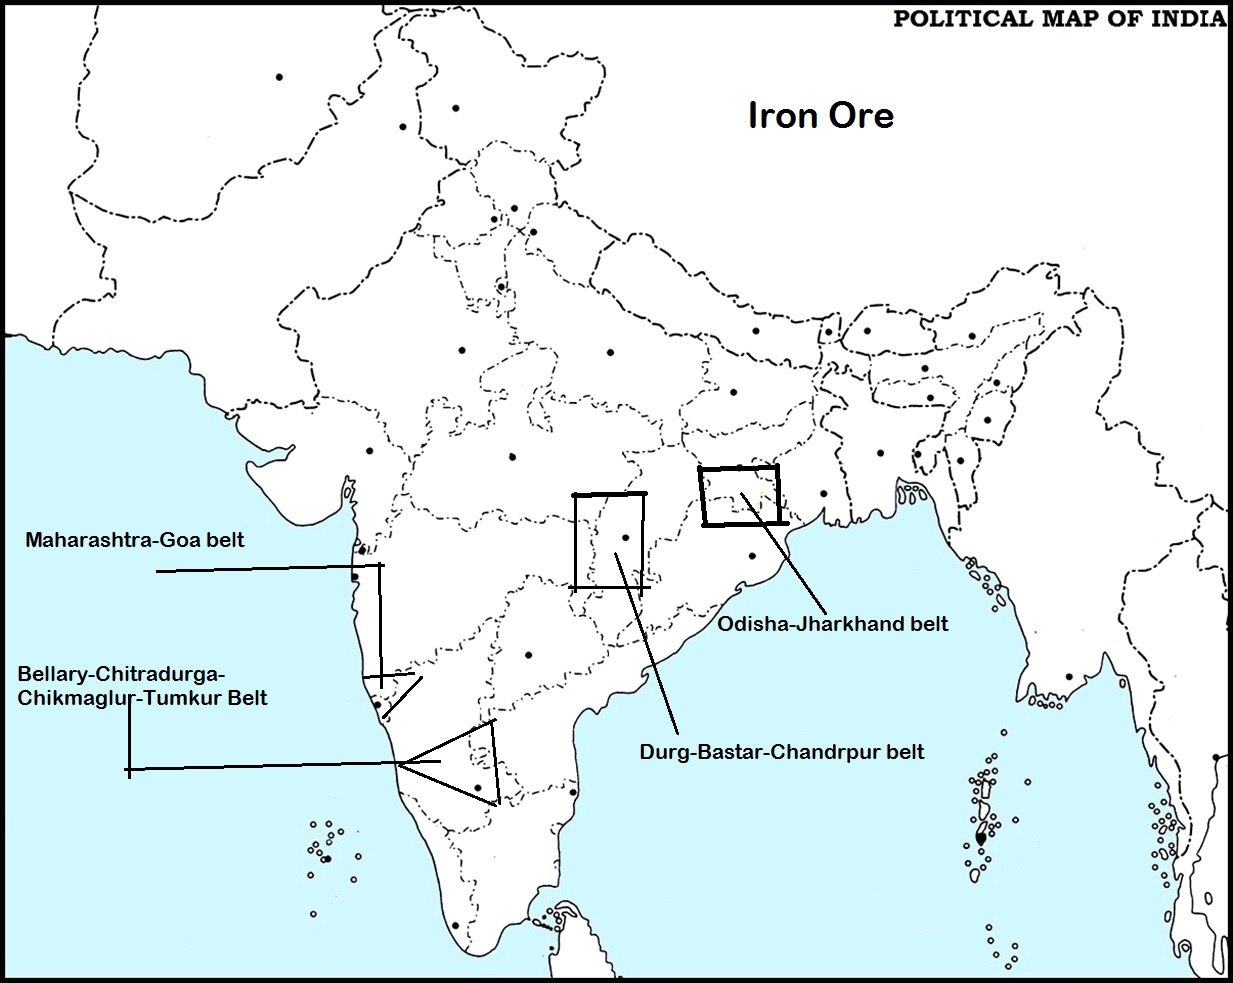 NTSE SOCIAL SCIENCE MINERALS AND POWER RESOURCES IN INDIA